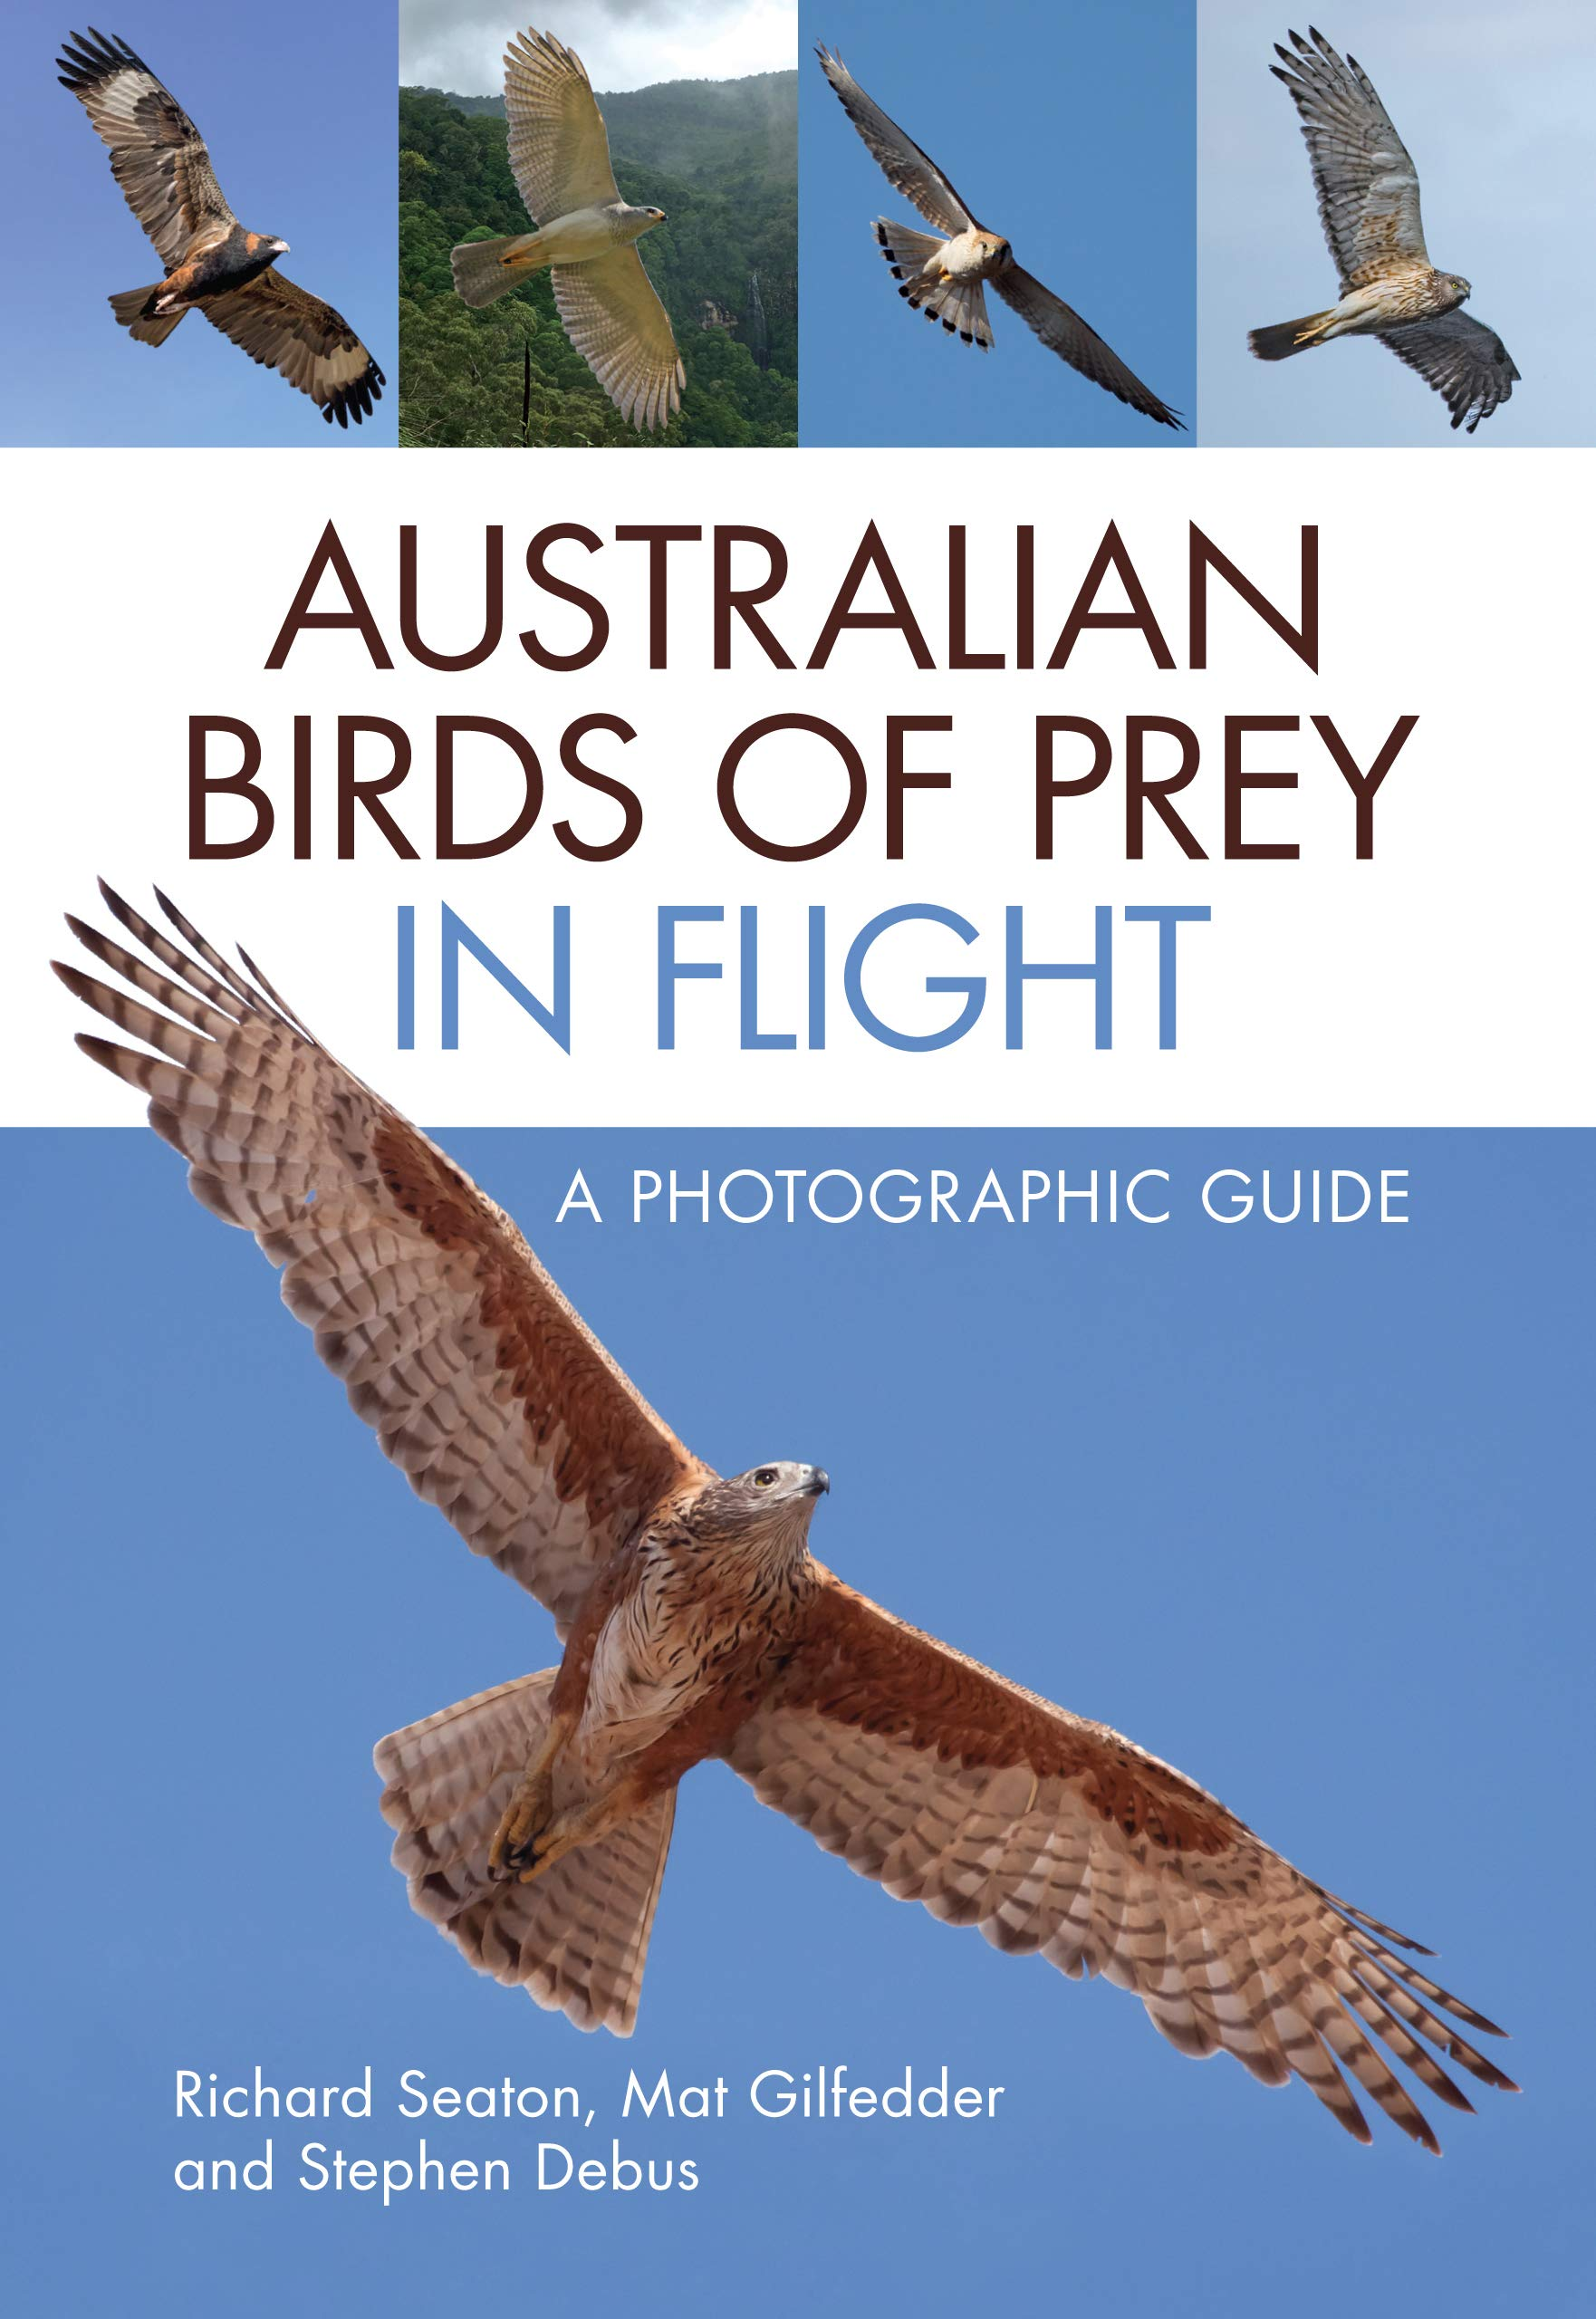 Image OfAustralian Birds Of Prey In Flight: A Photographic Guide